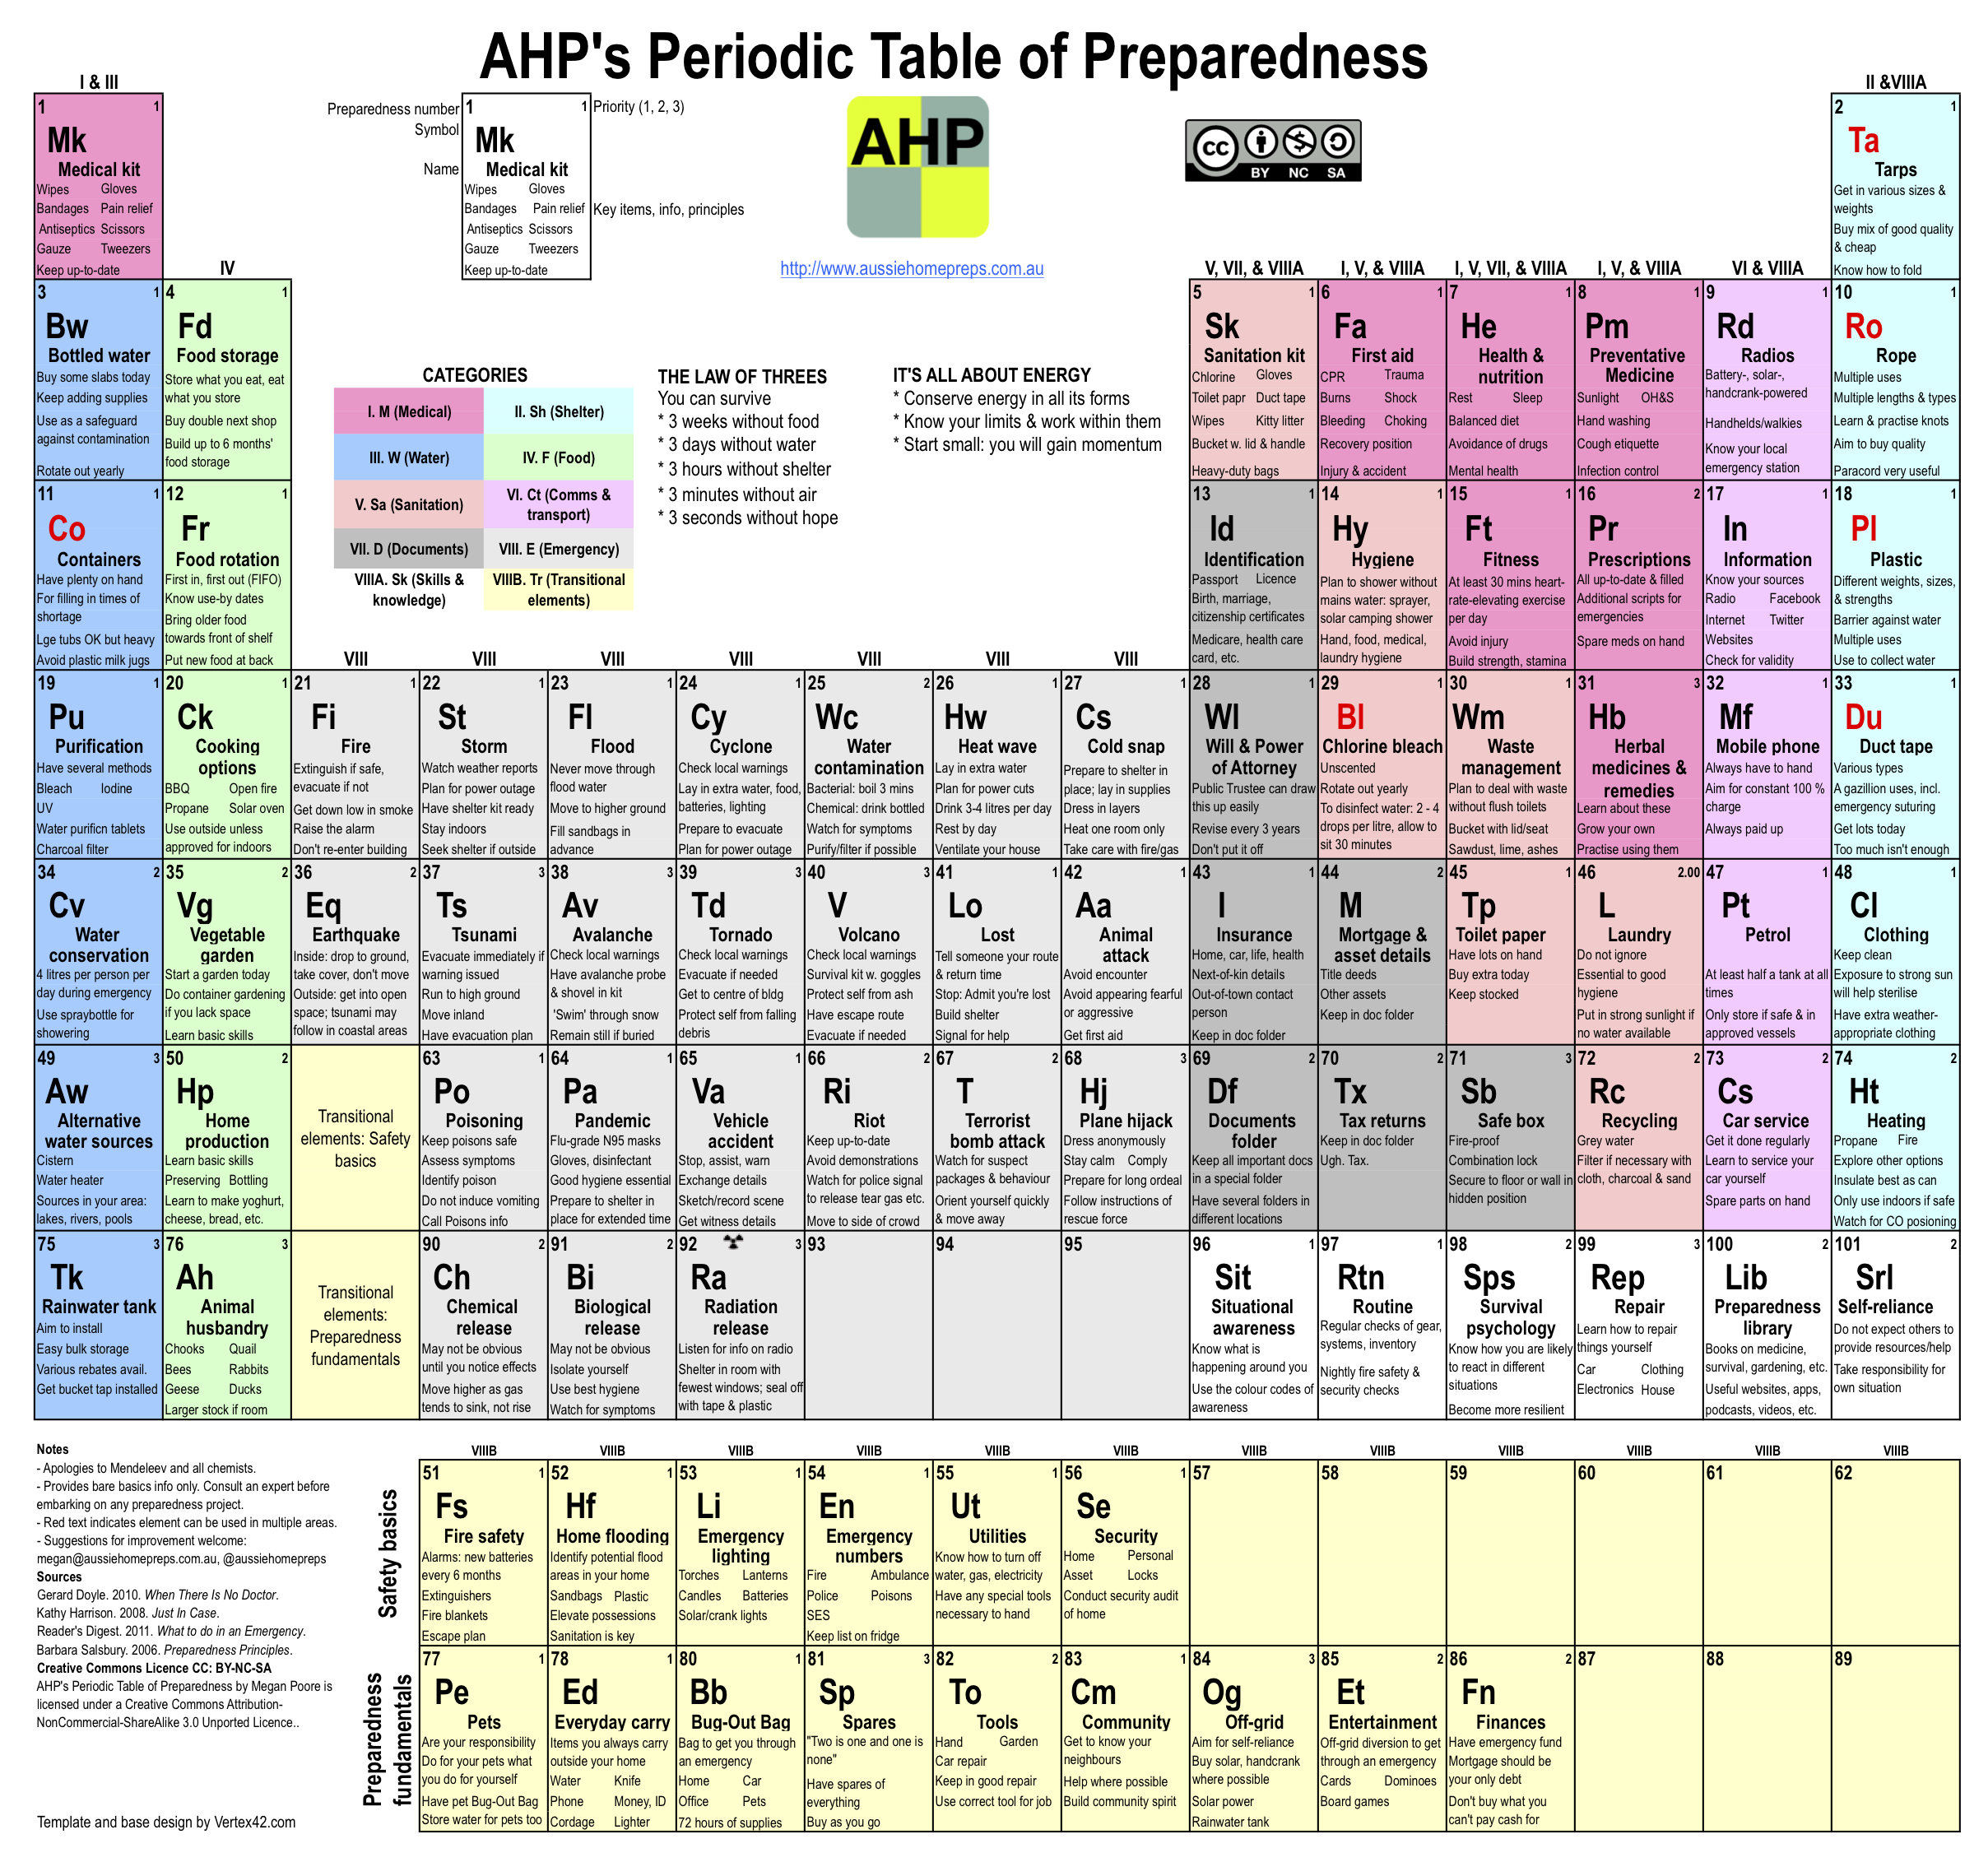 The periodic table aussie home preps ahps periodic table of preparedness click to view a larger image gamestrikefo Gallery